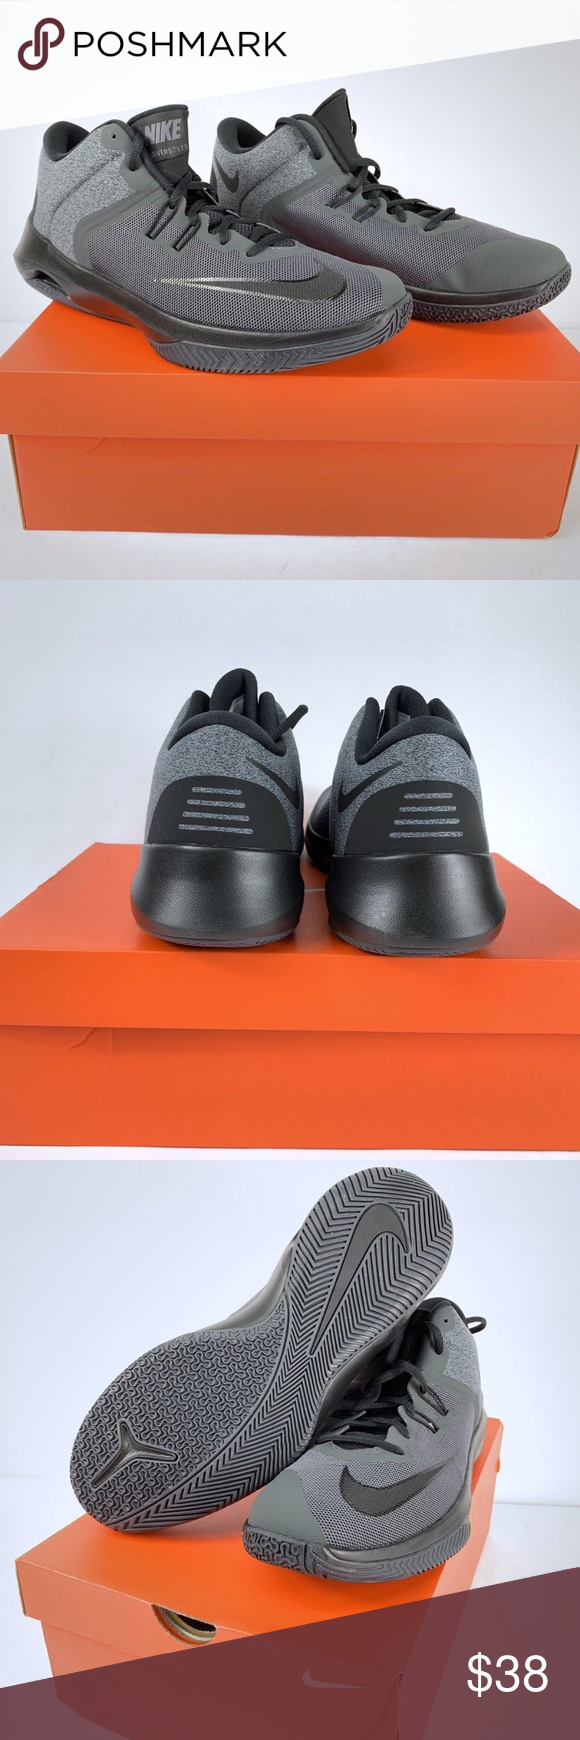 d323c3e71157 Nike Air Versatile Men s Shoes Nike Air Versatile II NBK Black Grey  Anthracite Basketball AA3819-001 Size 10 Nike Shoes